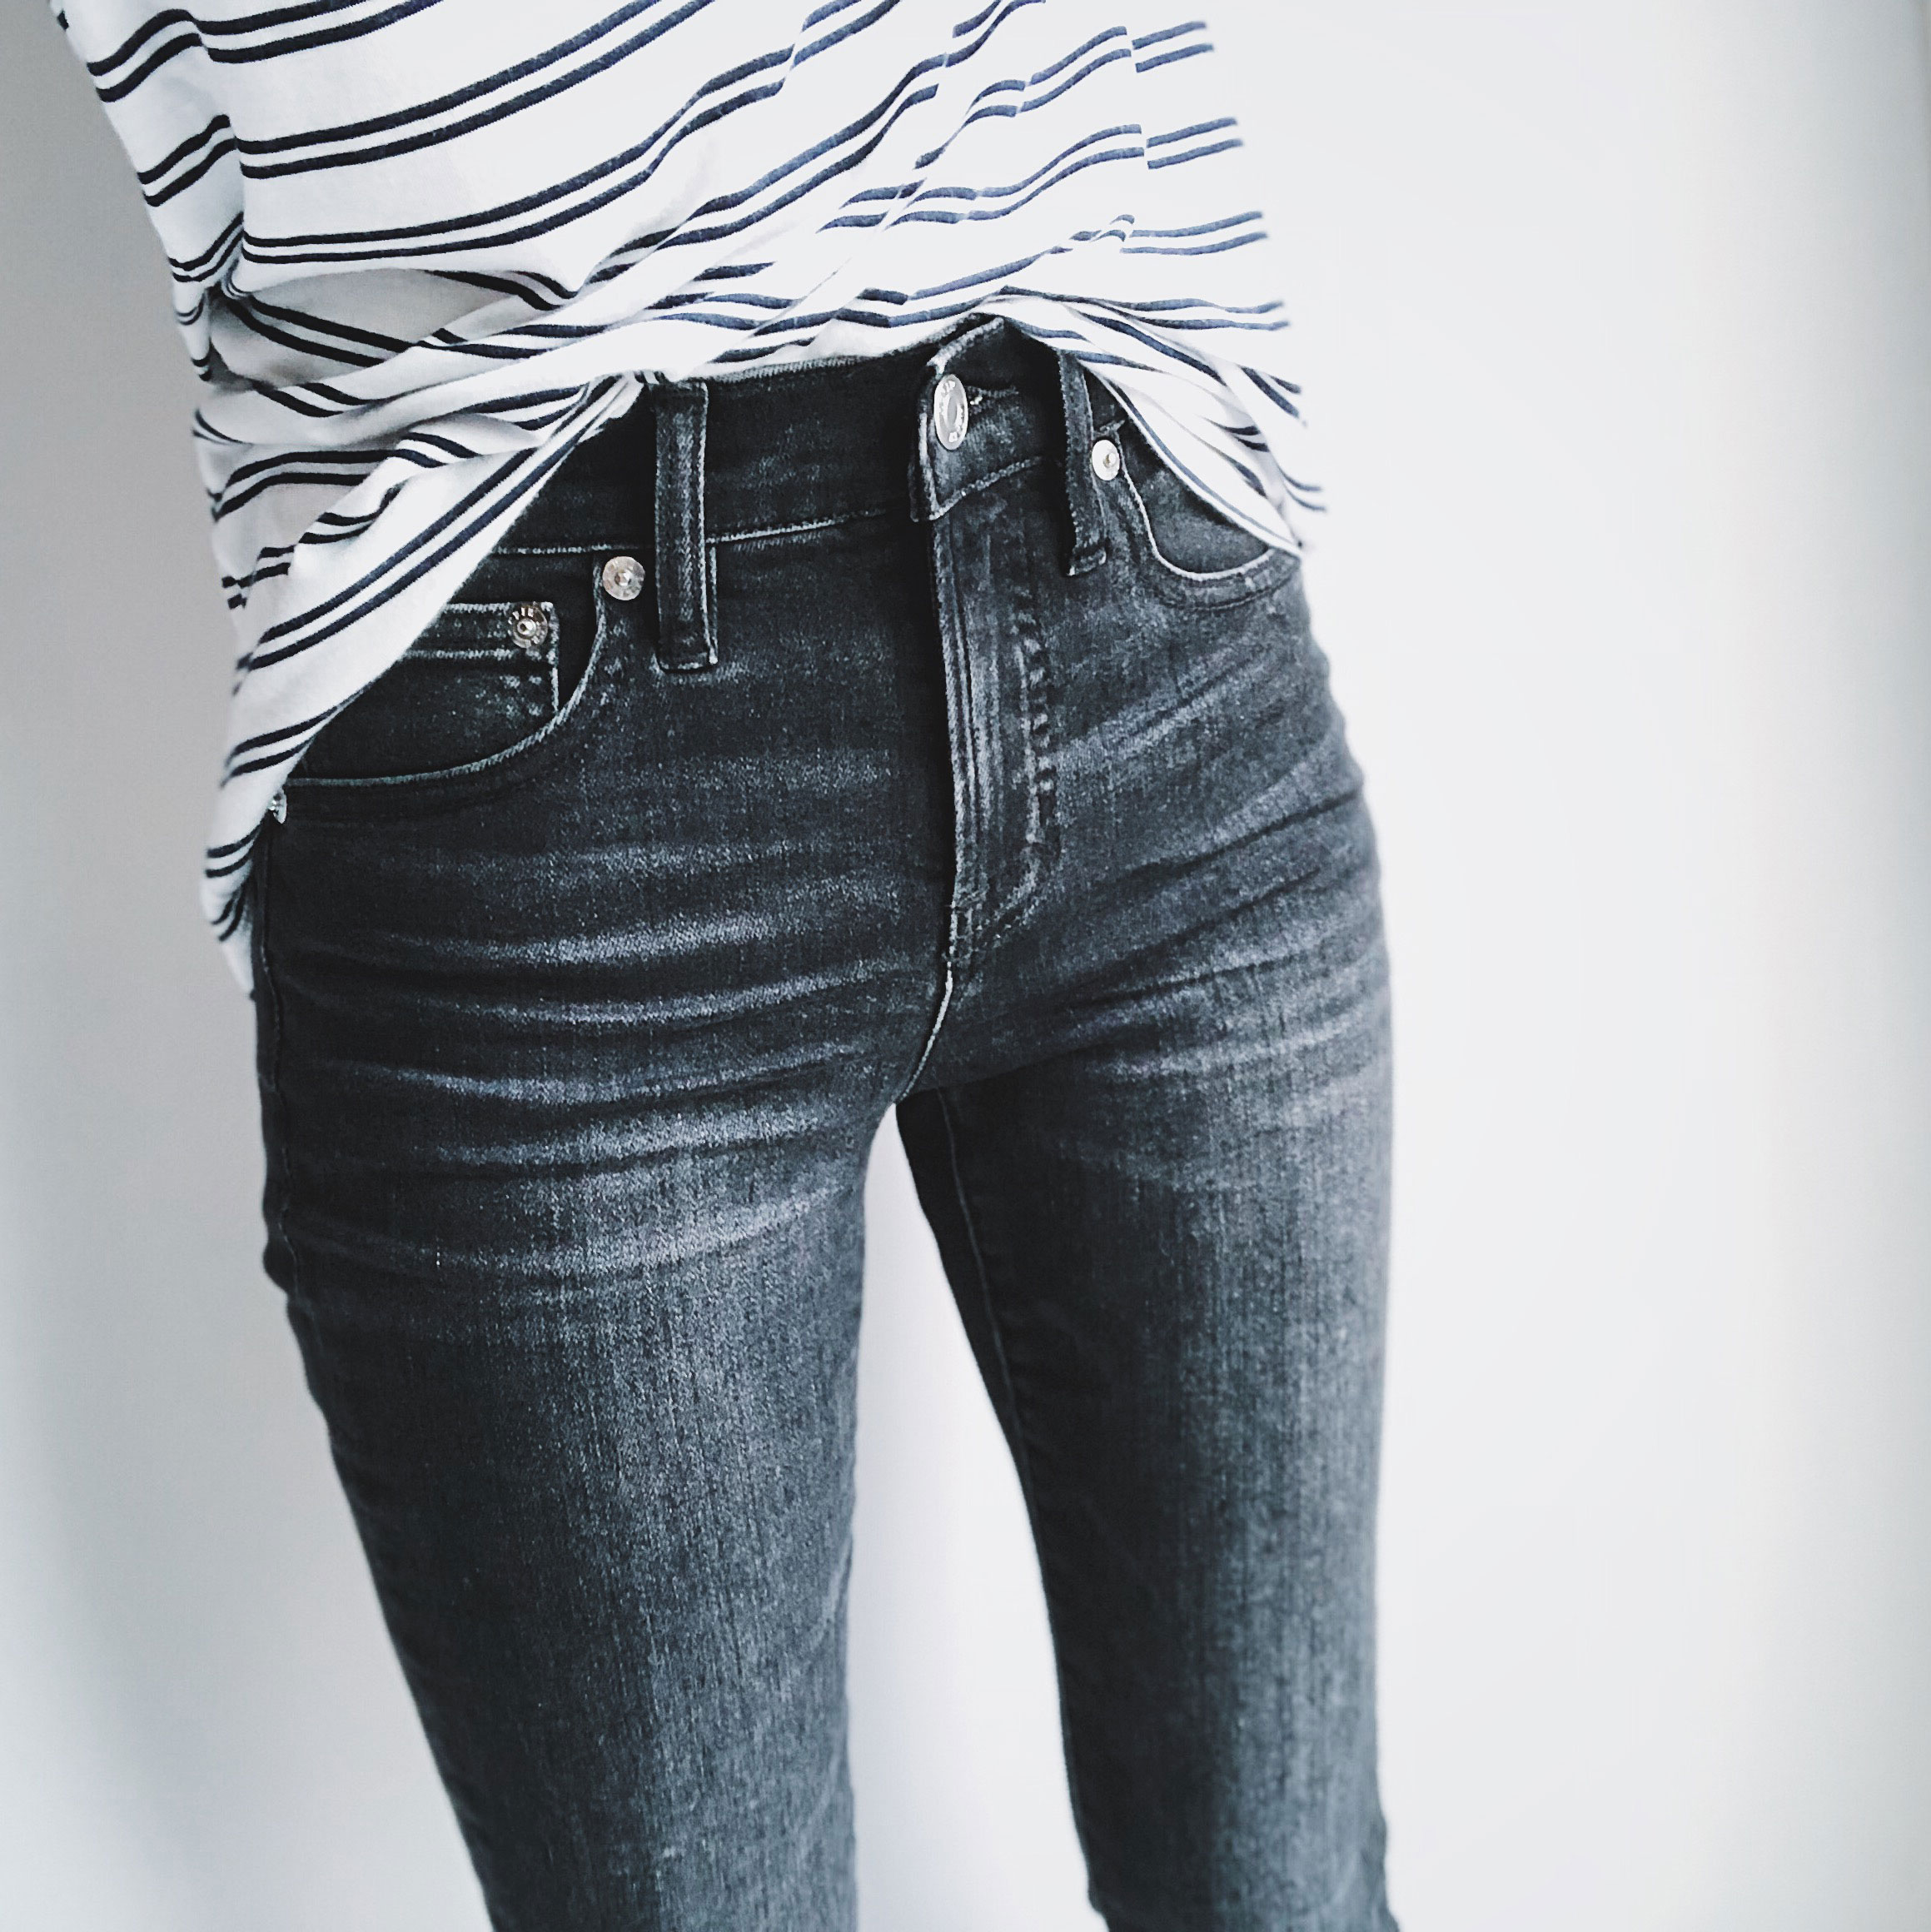 J.Crew Petite 9″ High Rise Toothpick Jean Review